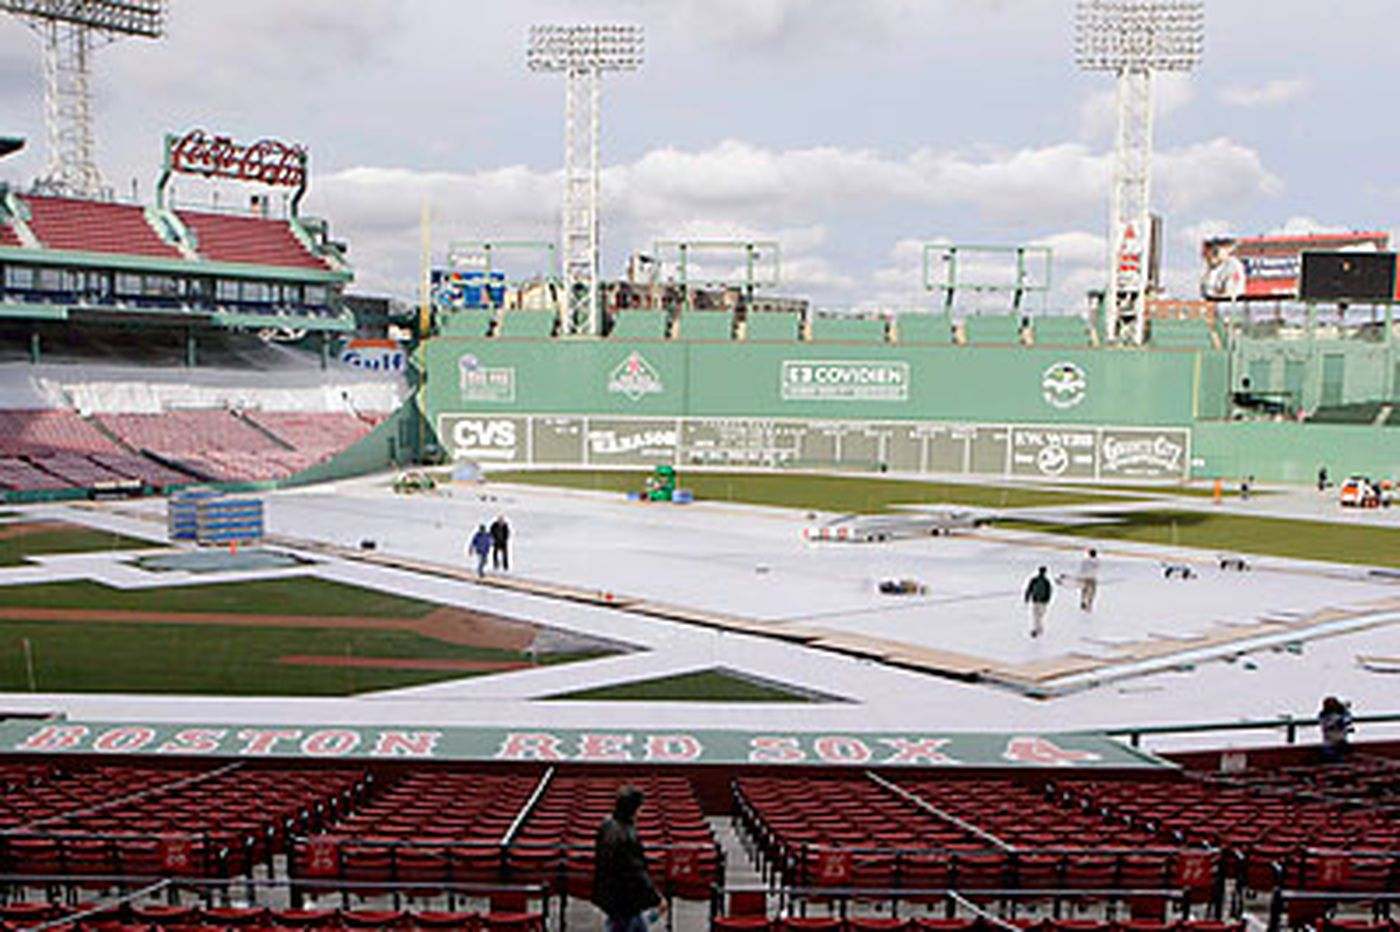 One Flyer is green when it comes to Fenway's Monster